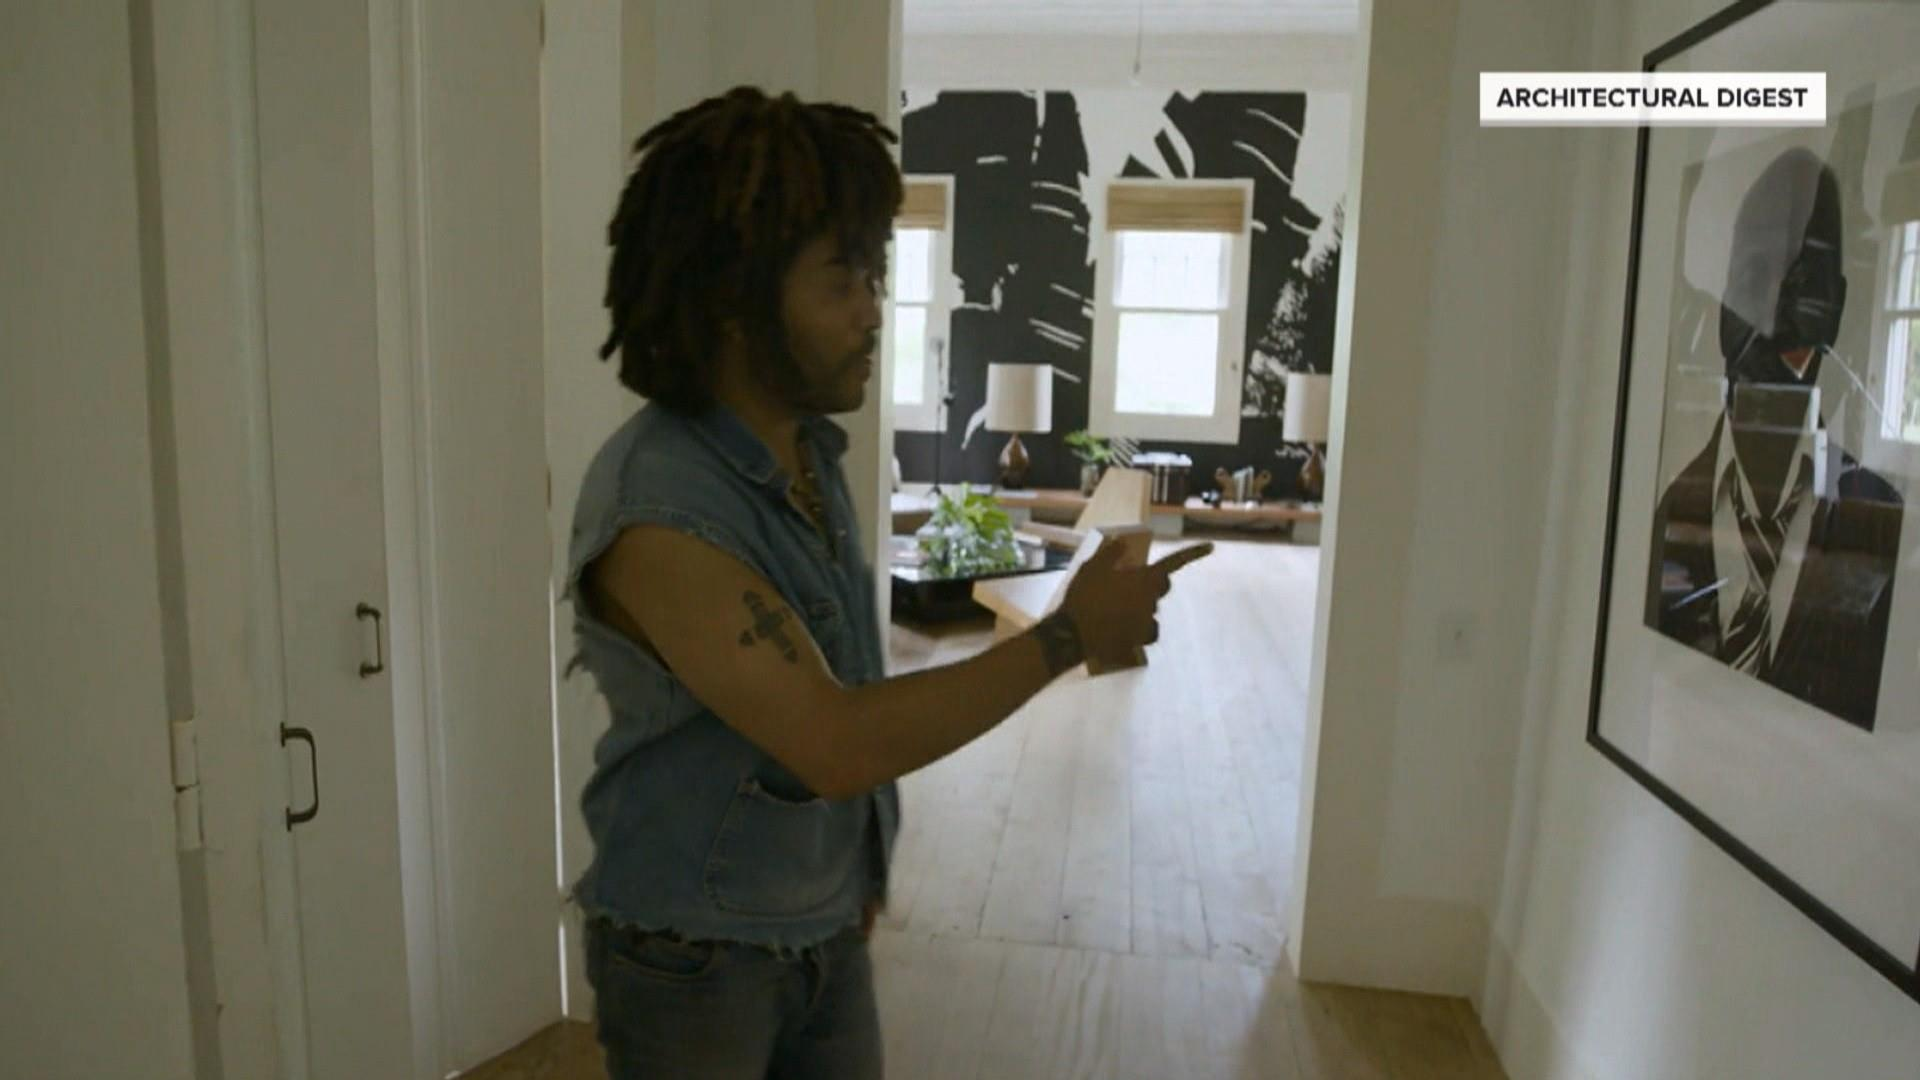 Lenny Kravitz gives Arch Digest a look inside his Brazil home